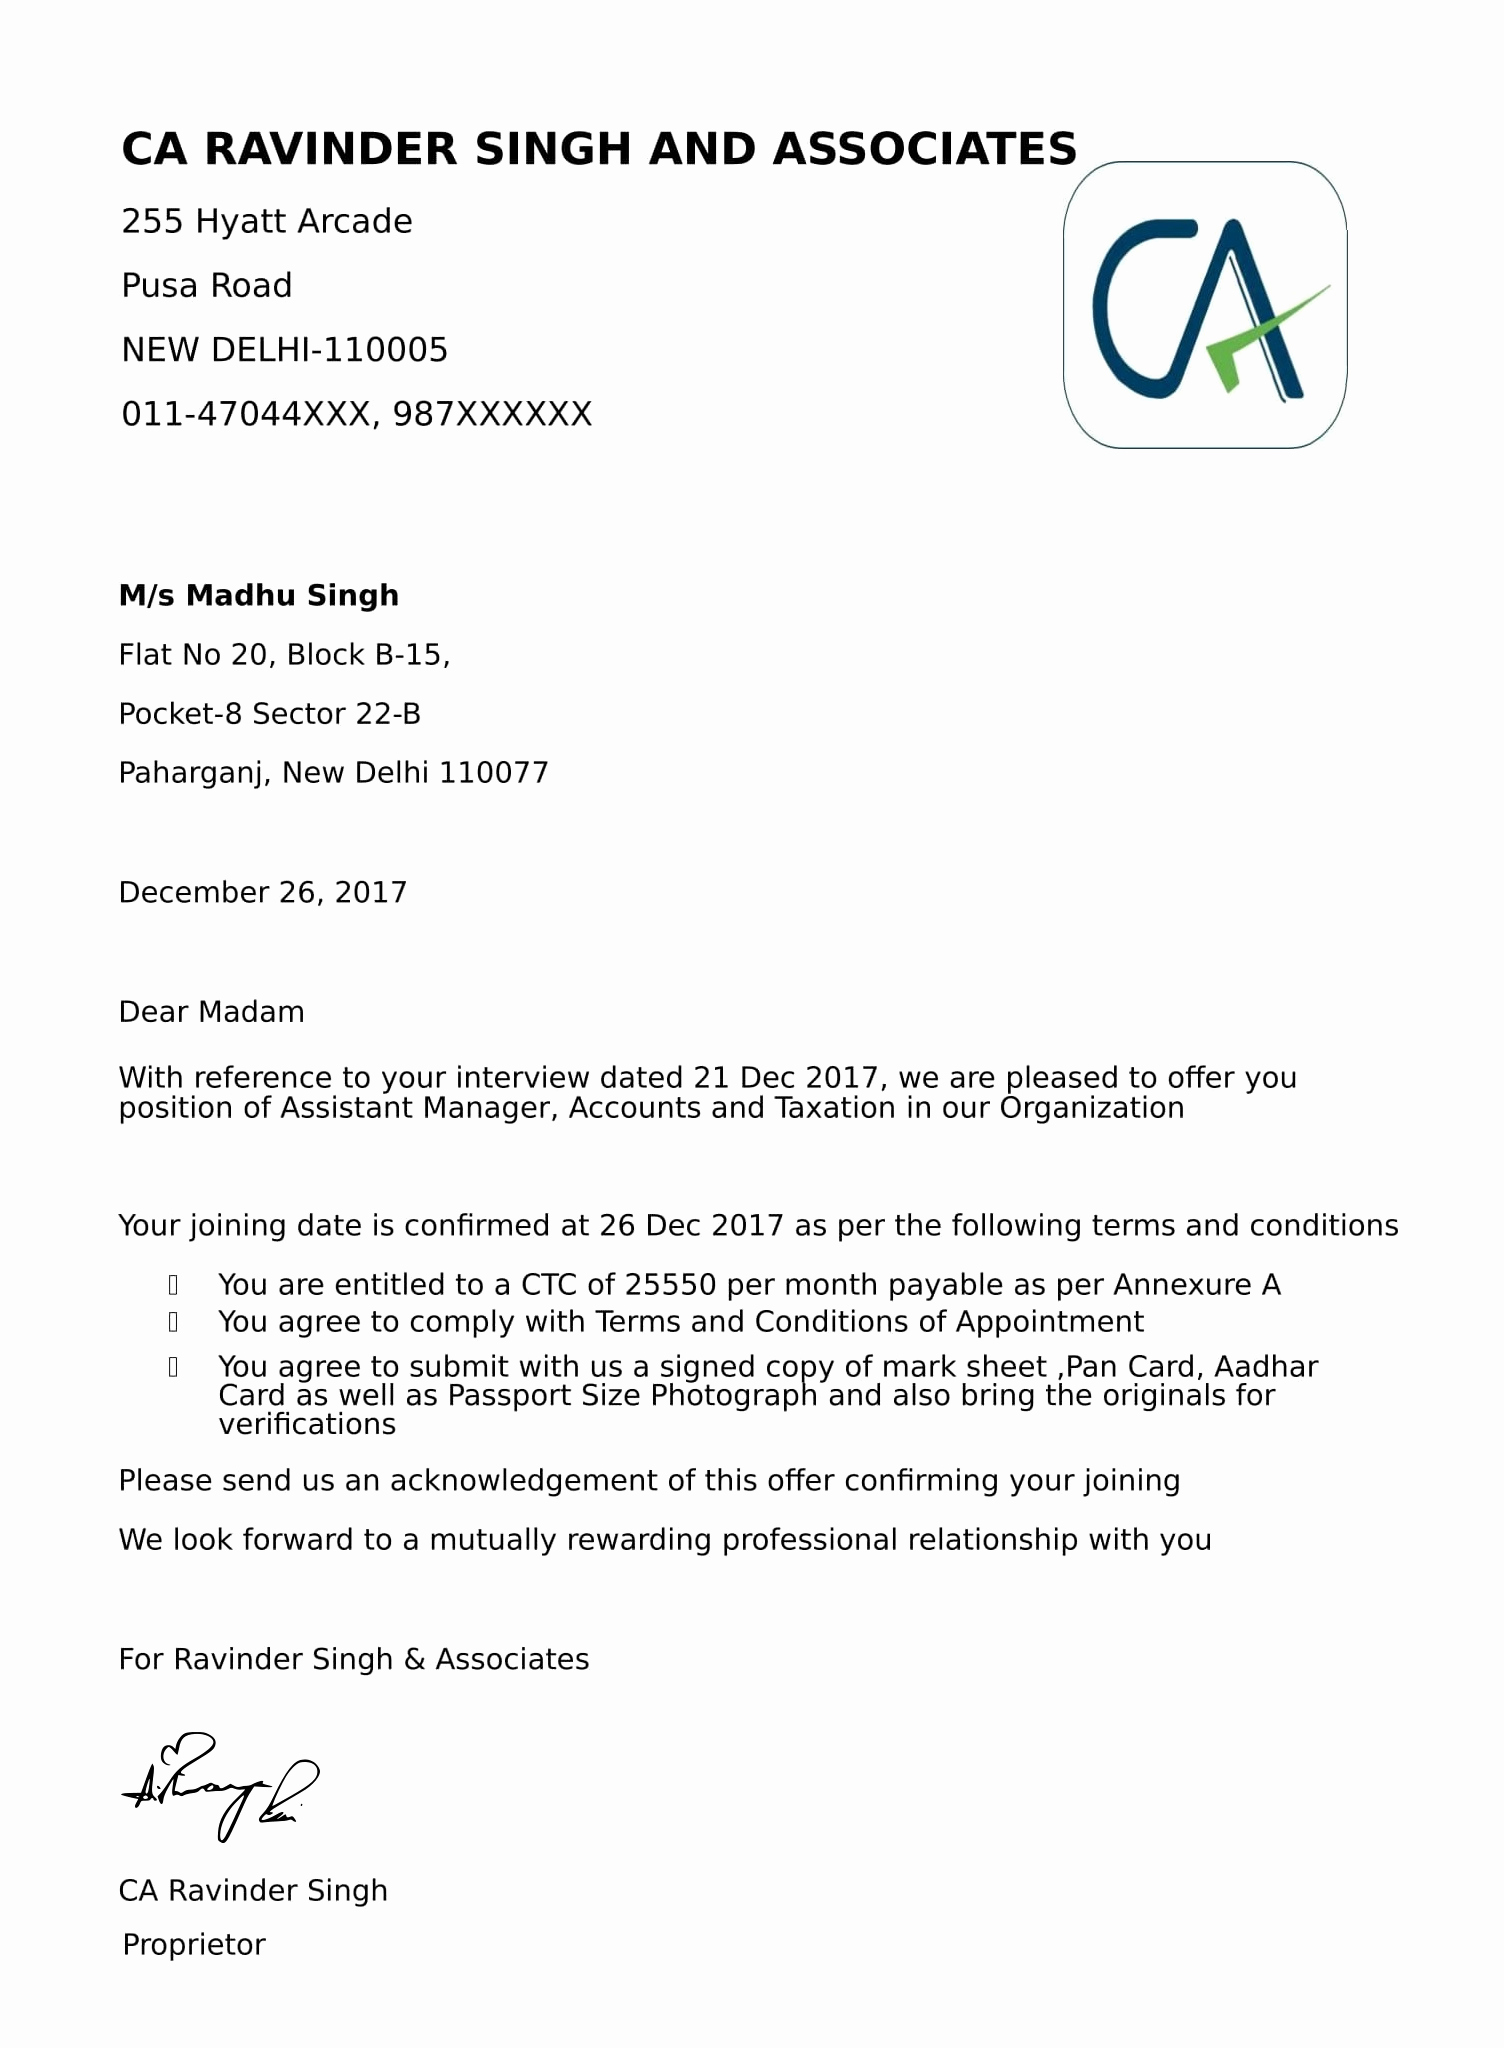 Job Offer Letter Example Unique Fer Letters & Appointment Letter Job and Business